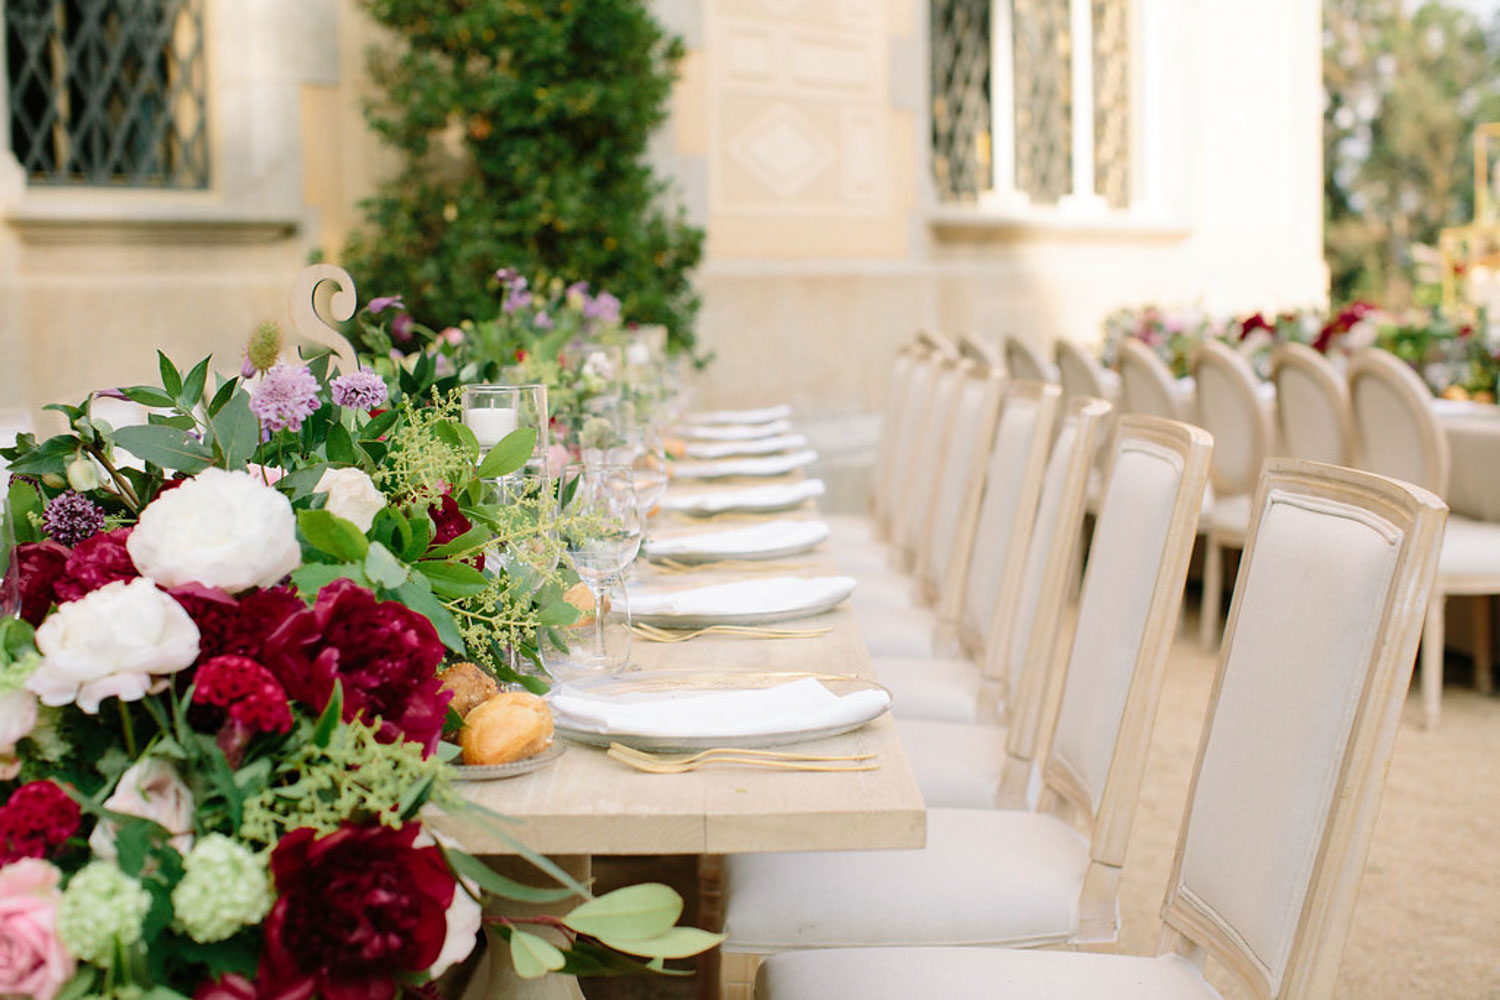 Table set up gold cutlery wood tables burgundy flowers Barcelona